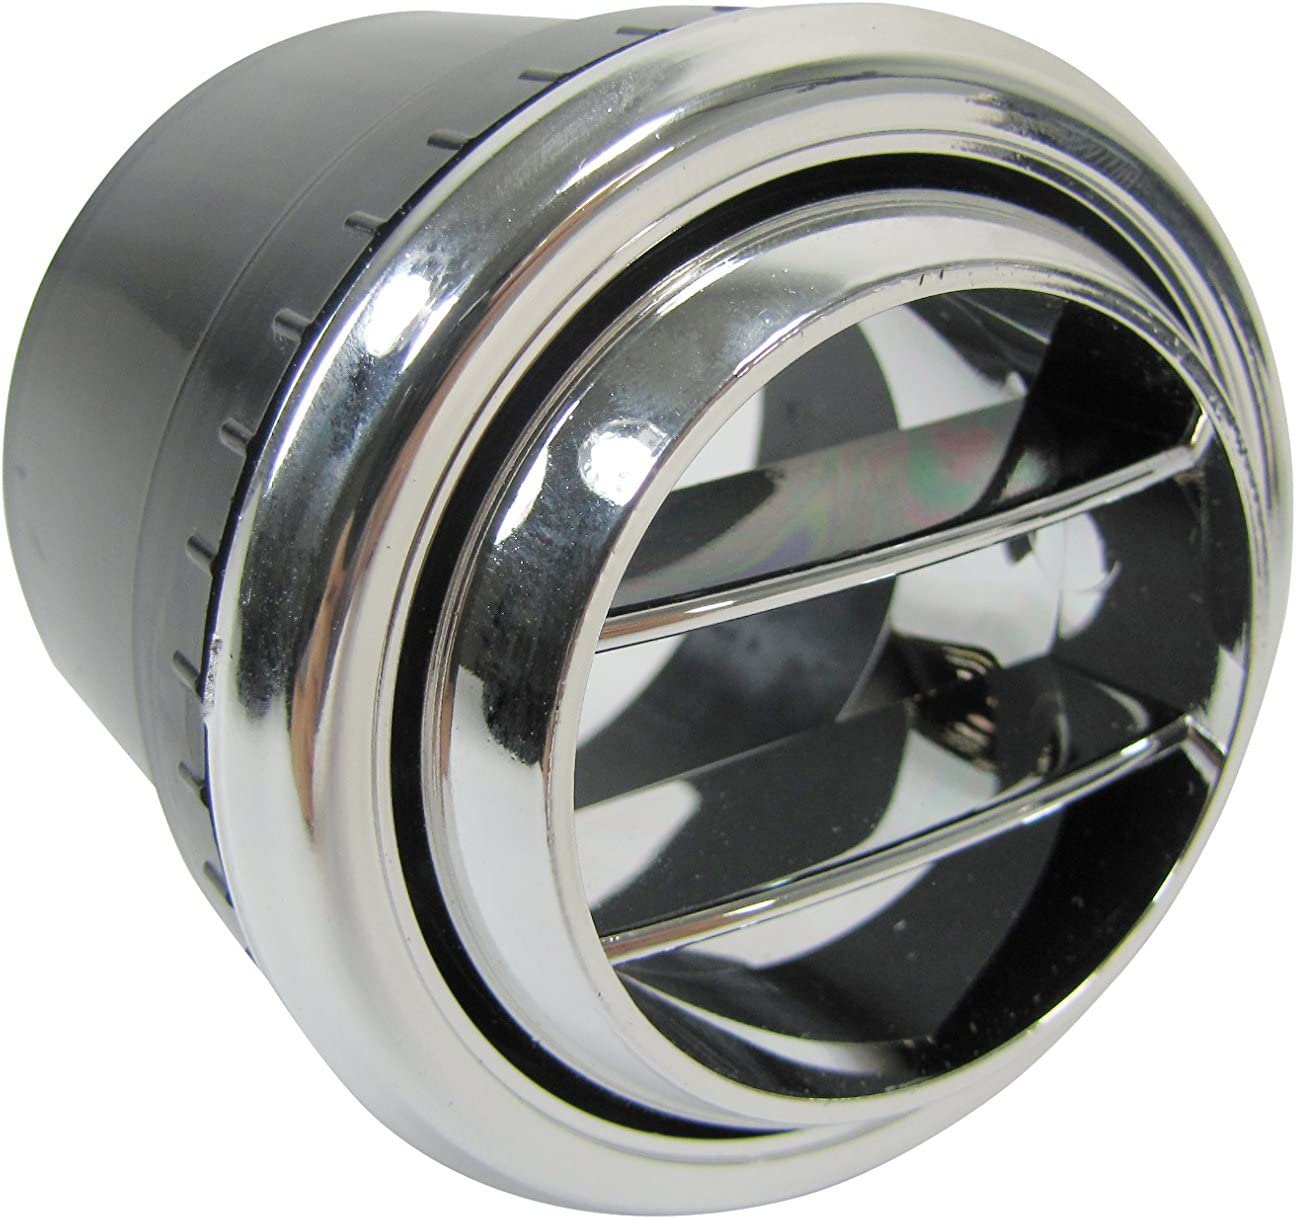 Indash Round Chrome Vent//Louver for 2 Duct Hose #32-13